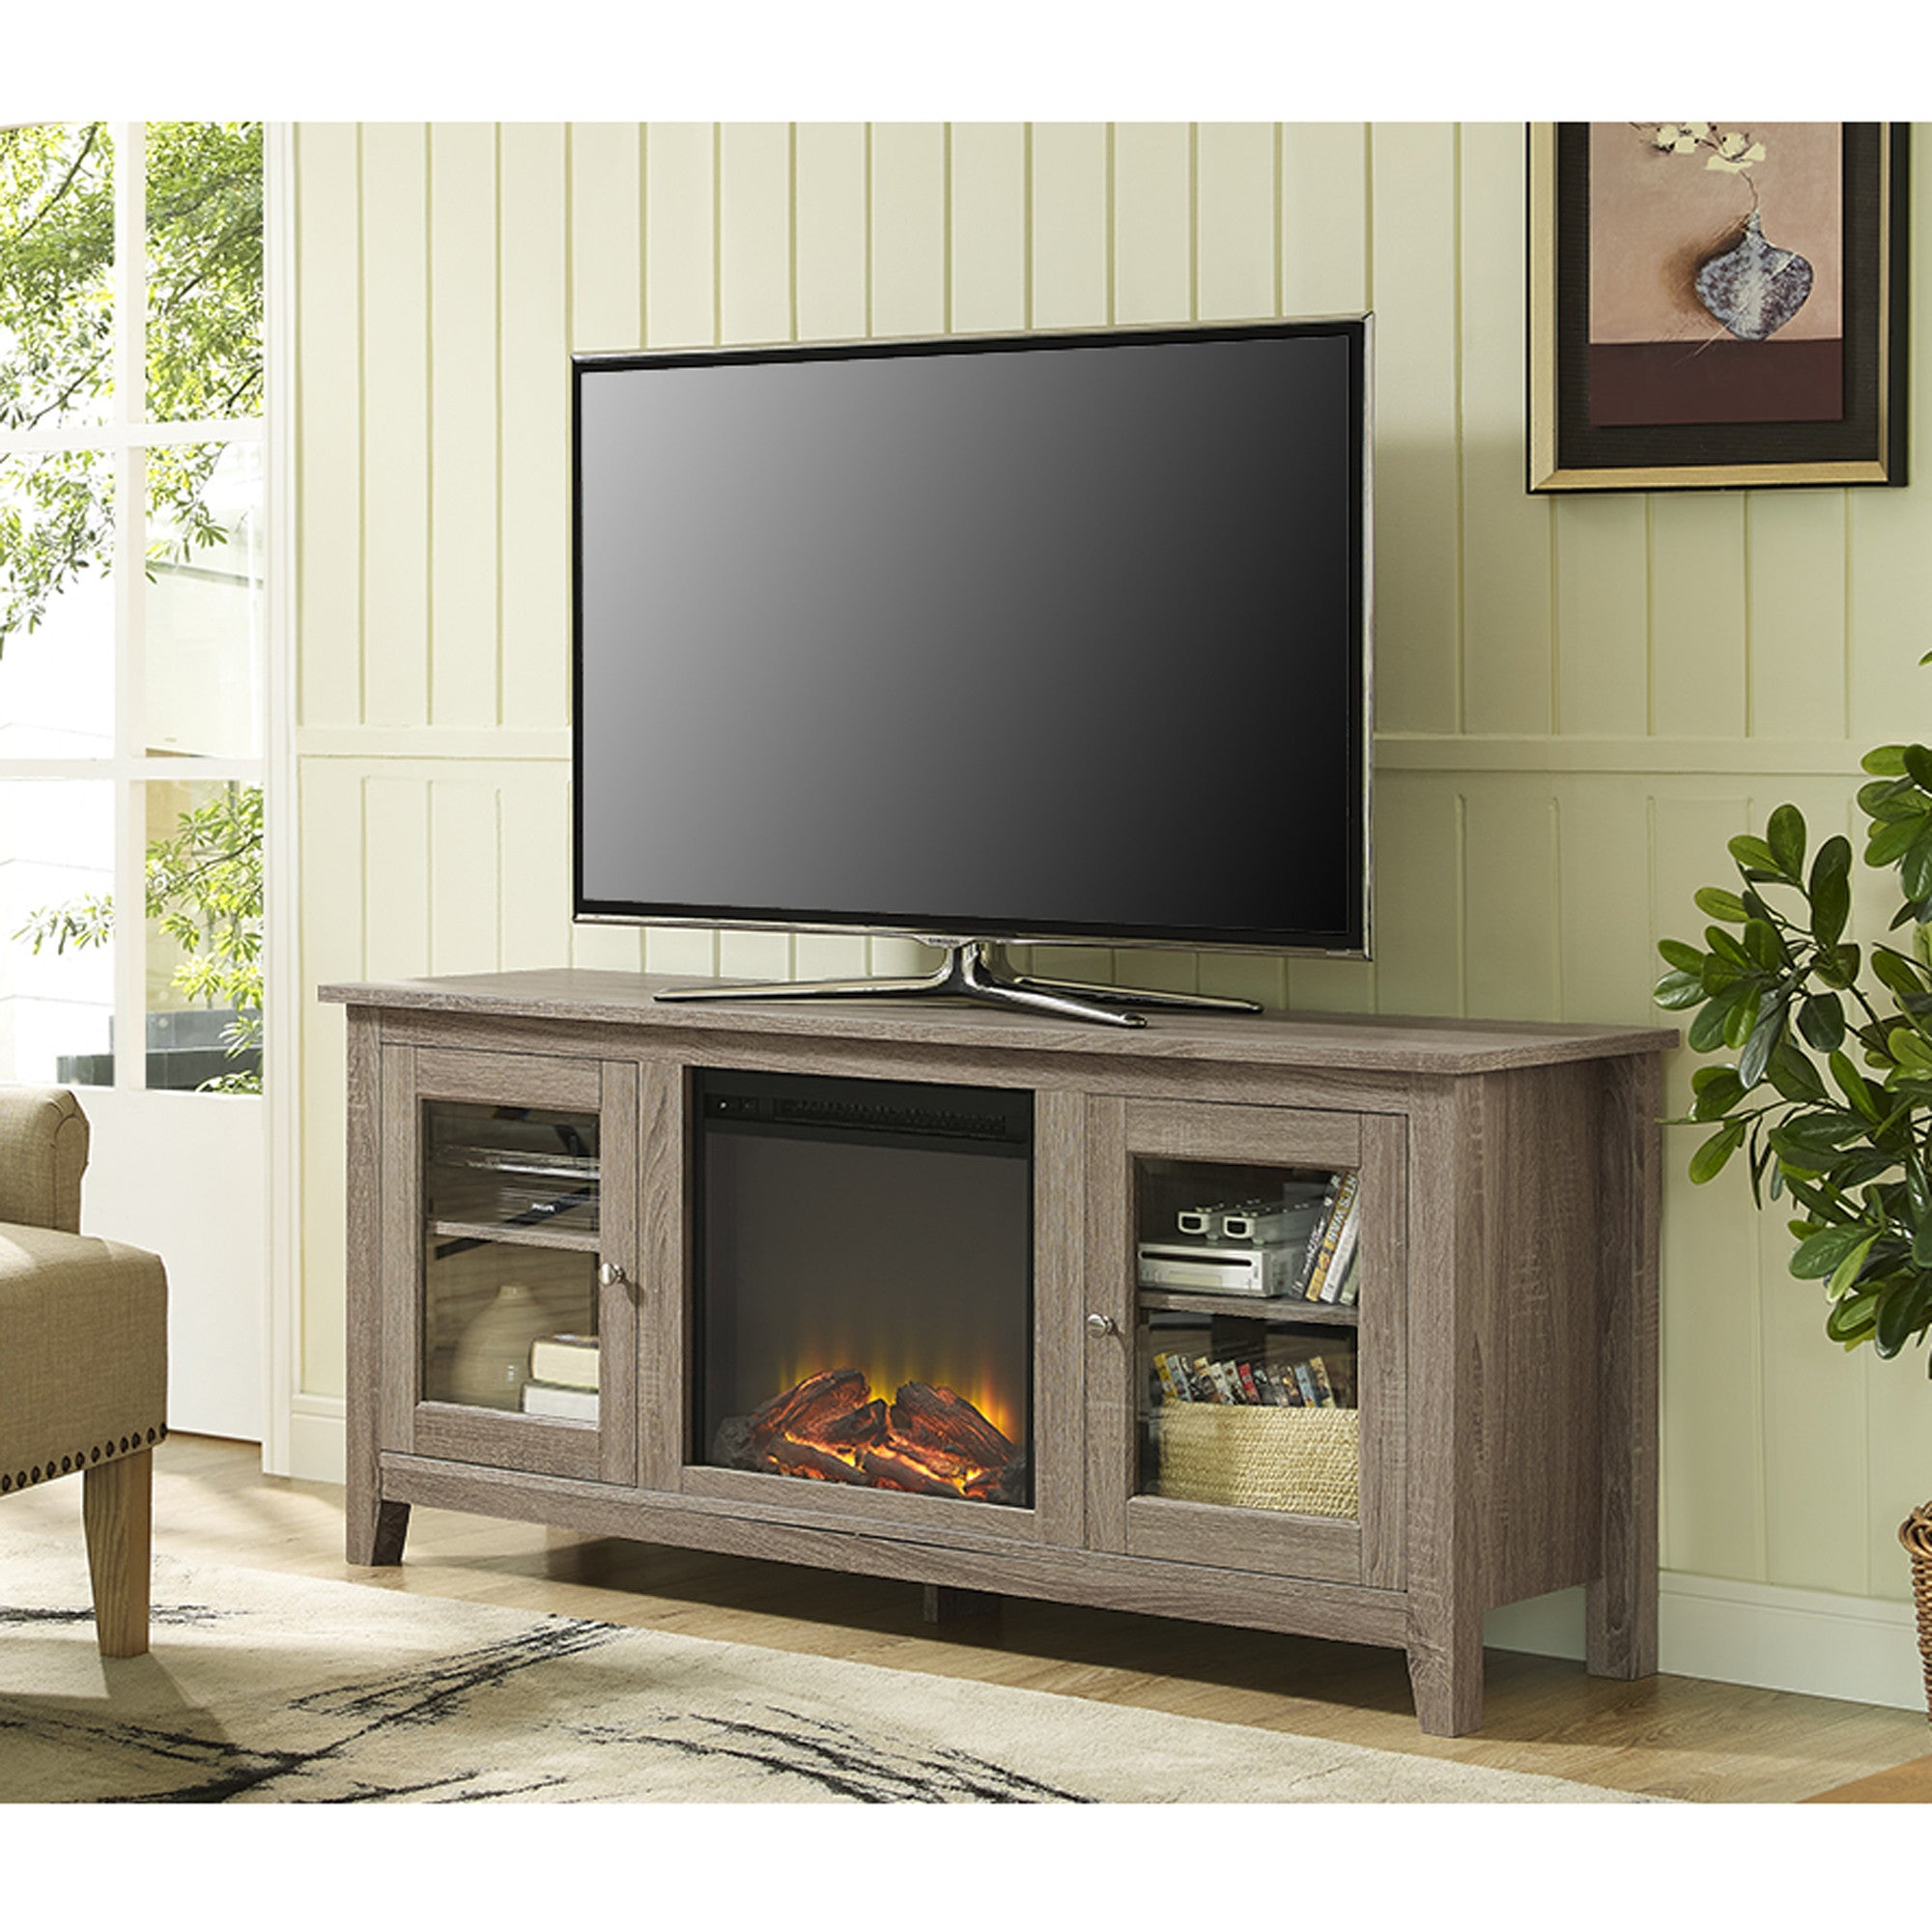 wall by berkshire l center decor feature mccmatricschool plug gas tv fireplace home entertainment com in buy